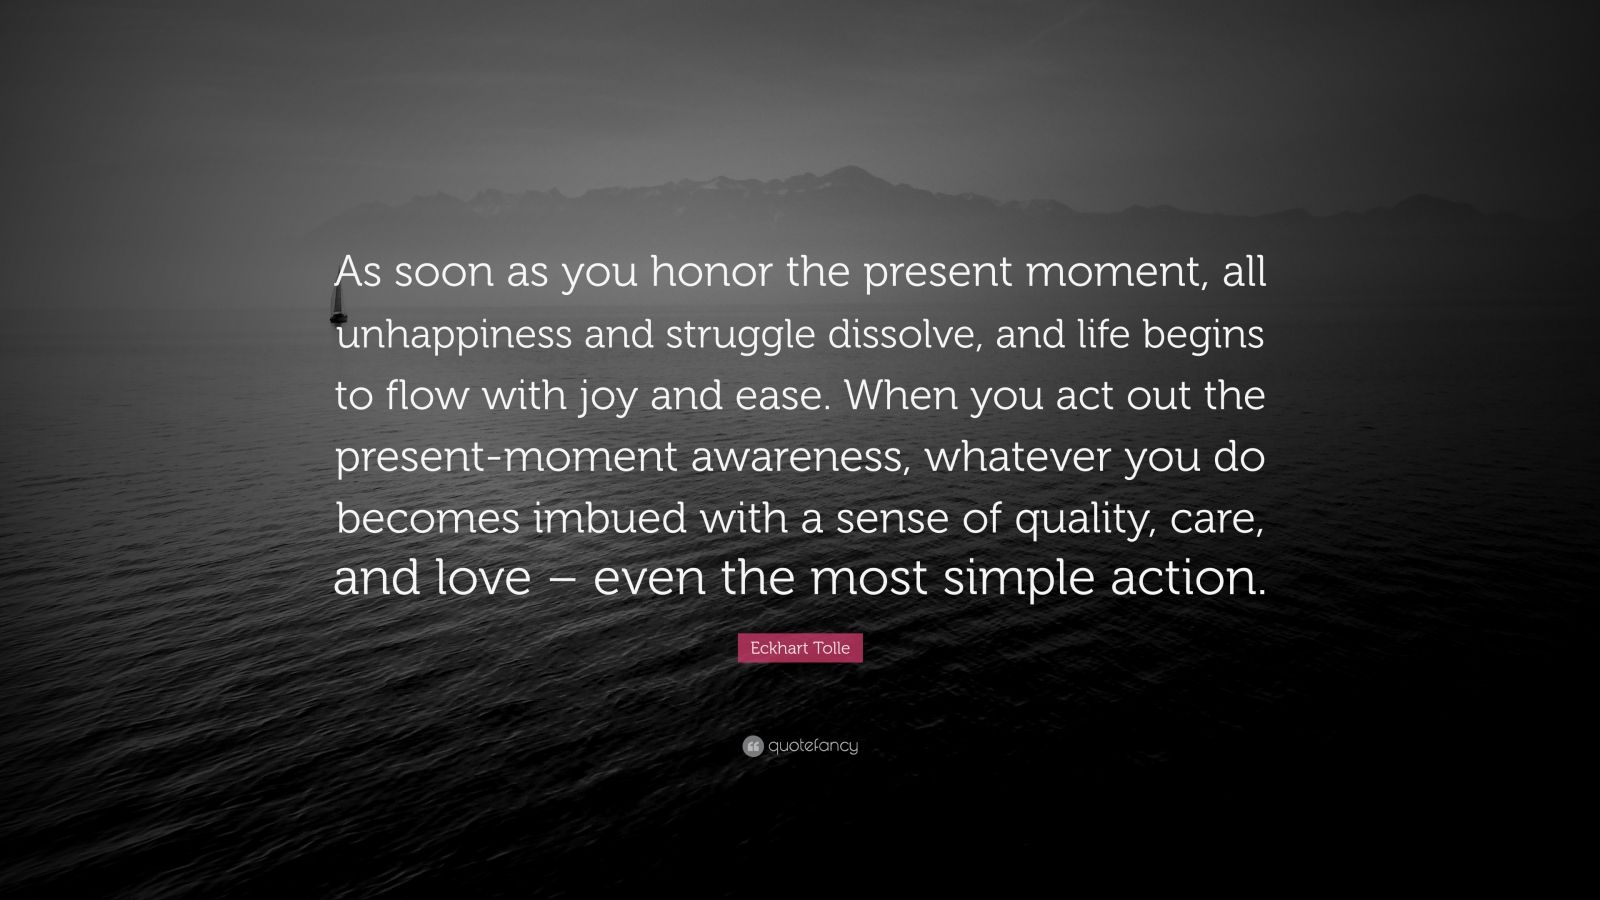 """Eckhart Tolle Quote: """"As soon as you honor the present moment, all unhappiness and struggle dissolve, and life begins to flow with joy and ease. When you act out the present-moment awareness, whatever you do becomes imbued with a sense of quality, care, and love – even the most simple action."""""""